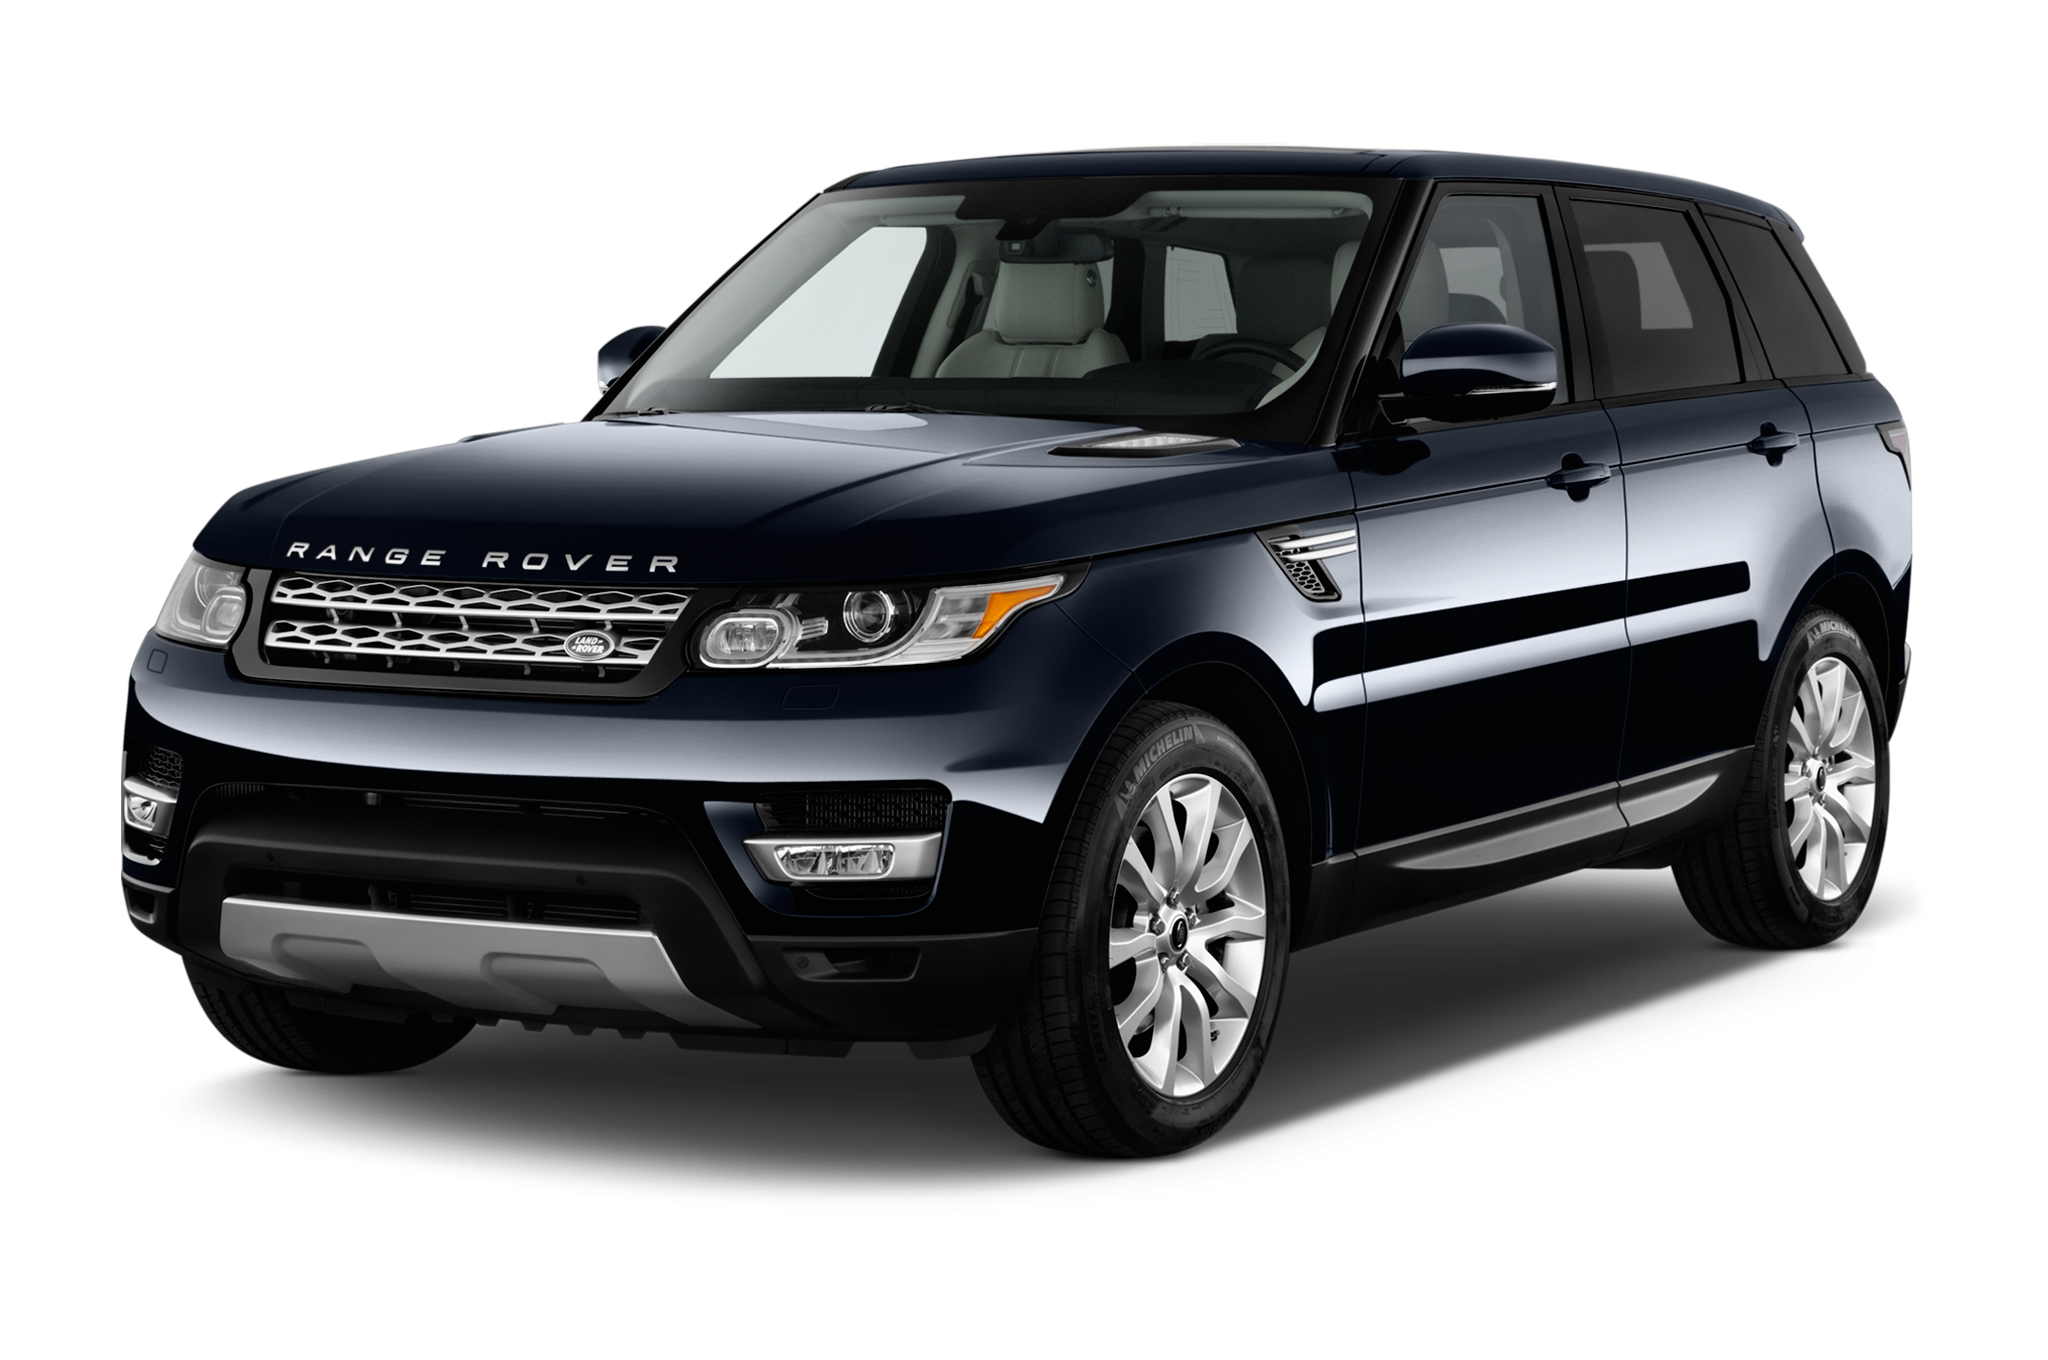 cheap third range business insider landrover of pr price china lookalike rover ext sells real knocked evoque has the thing is at selling off a and land it